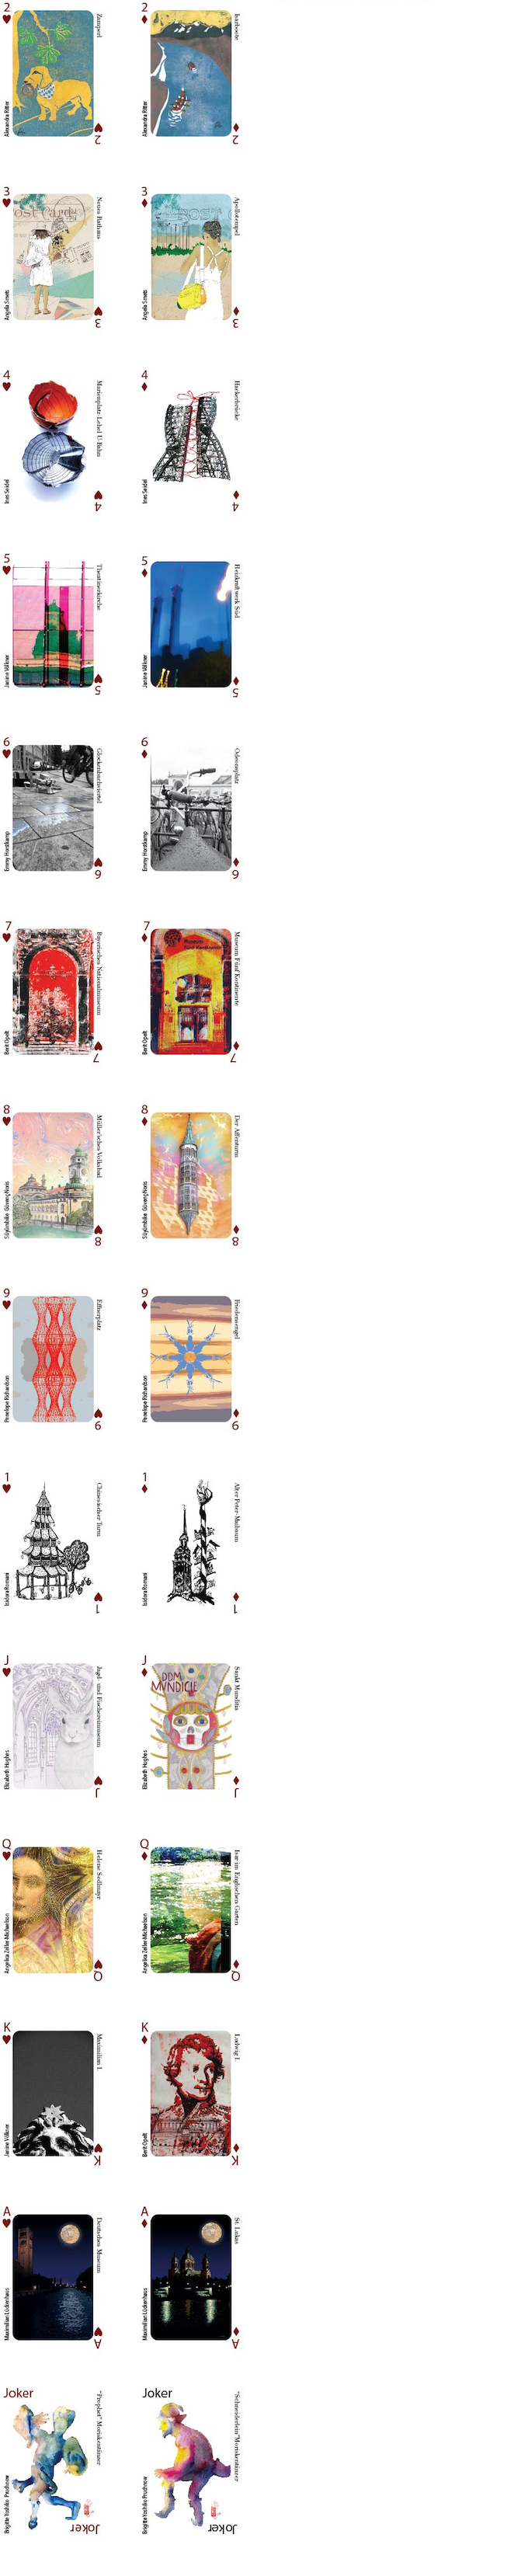 Here is a sampler from our Munich Artists Deck